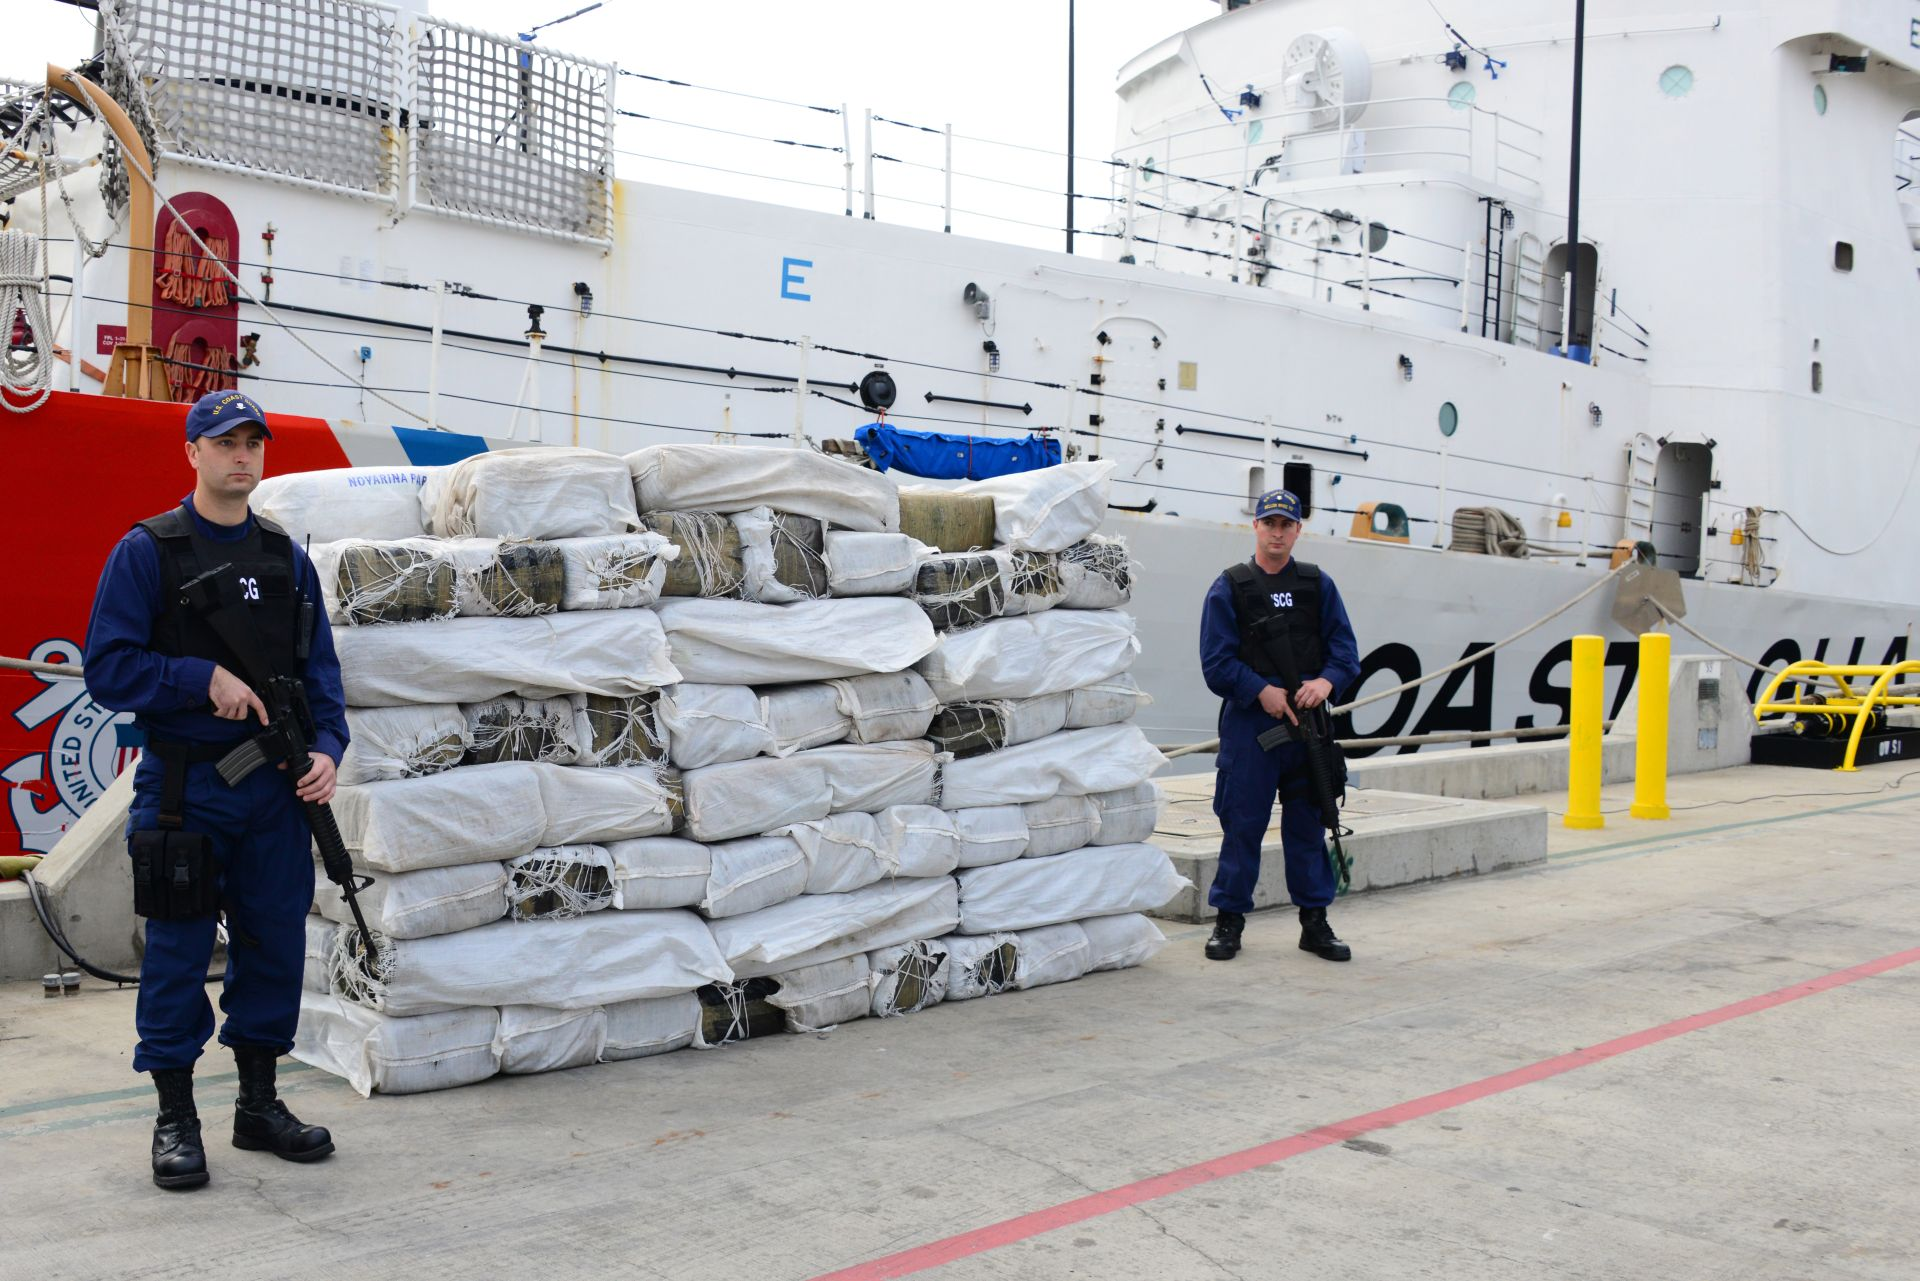 Crewmen from Seattle-based Coast Guard Cutter Mellon stand guard near 3,500 pounds of marijuana the crew offloaded from the cutter at Naval Base San Diego, Jan. 8, 2014. The Mellon's crew, along with the crews of San Diego-based Coast Guard Cutter Sea Otter, a Sacramento-based Coast Guard C-130 Hercules aircraft and a Customs and Border Protection Office of Air and Marine aircraft, interdicted the marijuana and more than 30 pounds of methamphetamine, and detained four suspected smugglers from a panga boat in international waters approximately 170 miles southwest of San Diego, Jan. 3. (U.S. Coast Guard photo by Petty Officer 3rd Class Connie Gawrelli)